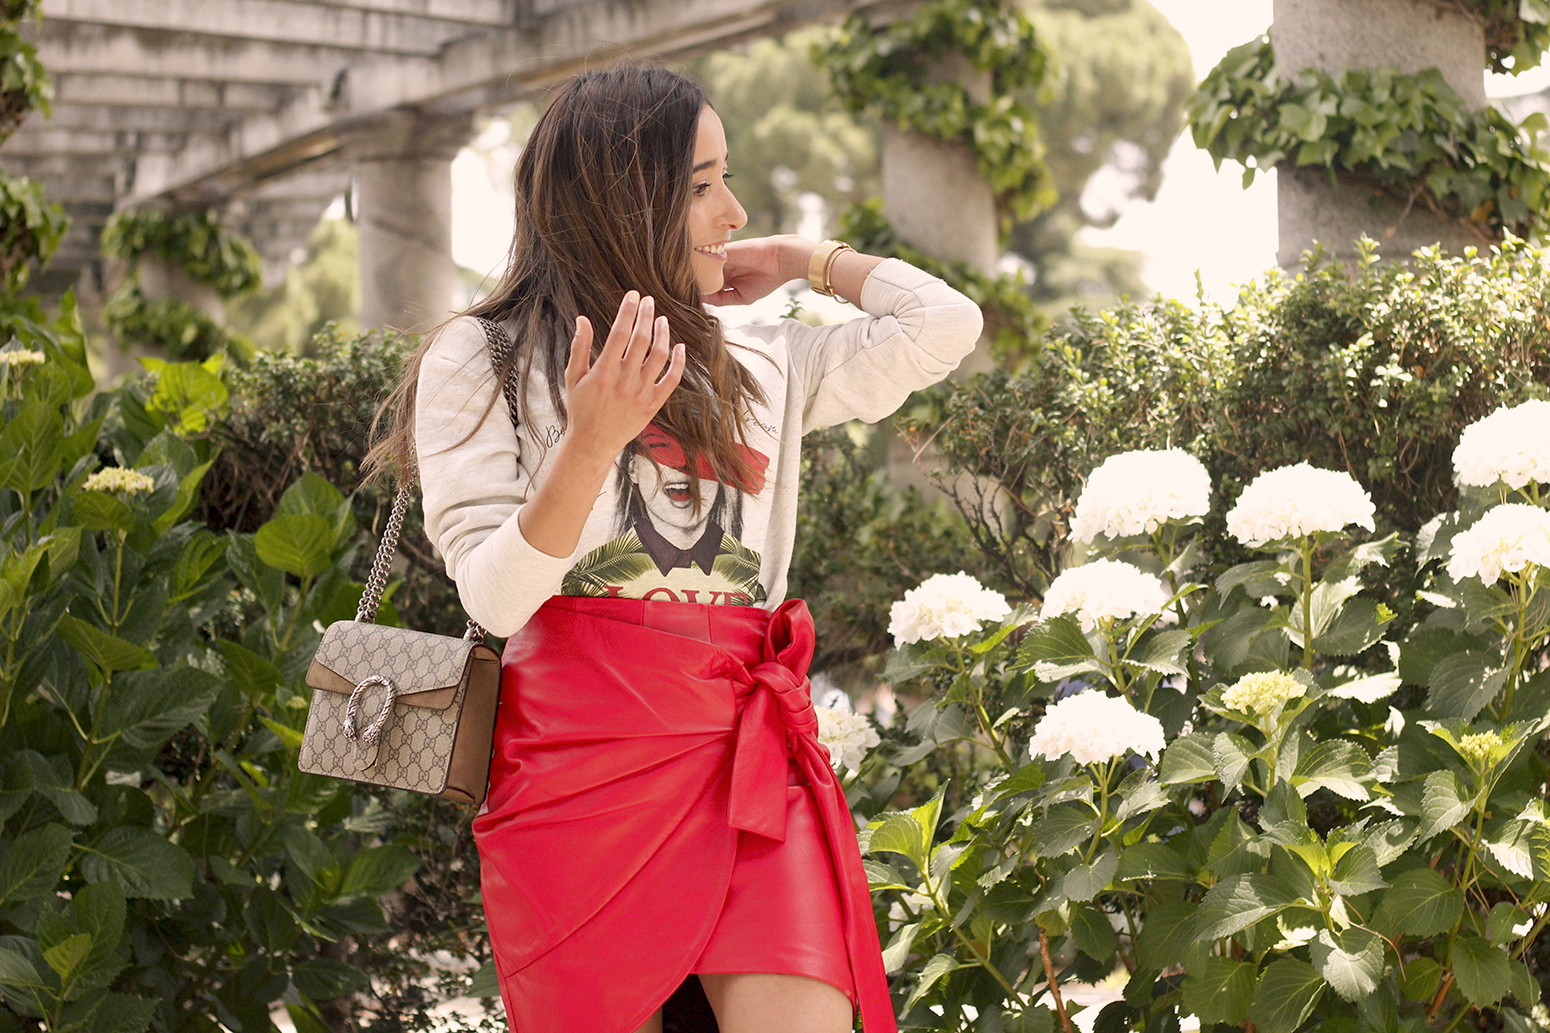 Red Leather Skirt kate moss sweatshirt converse gucci bag street style outfit 201910